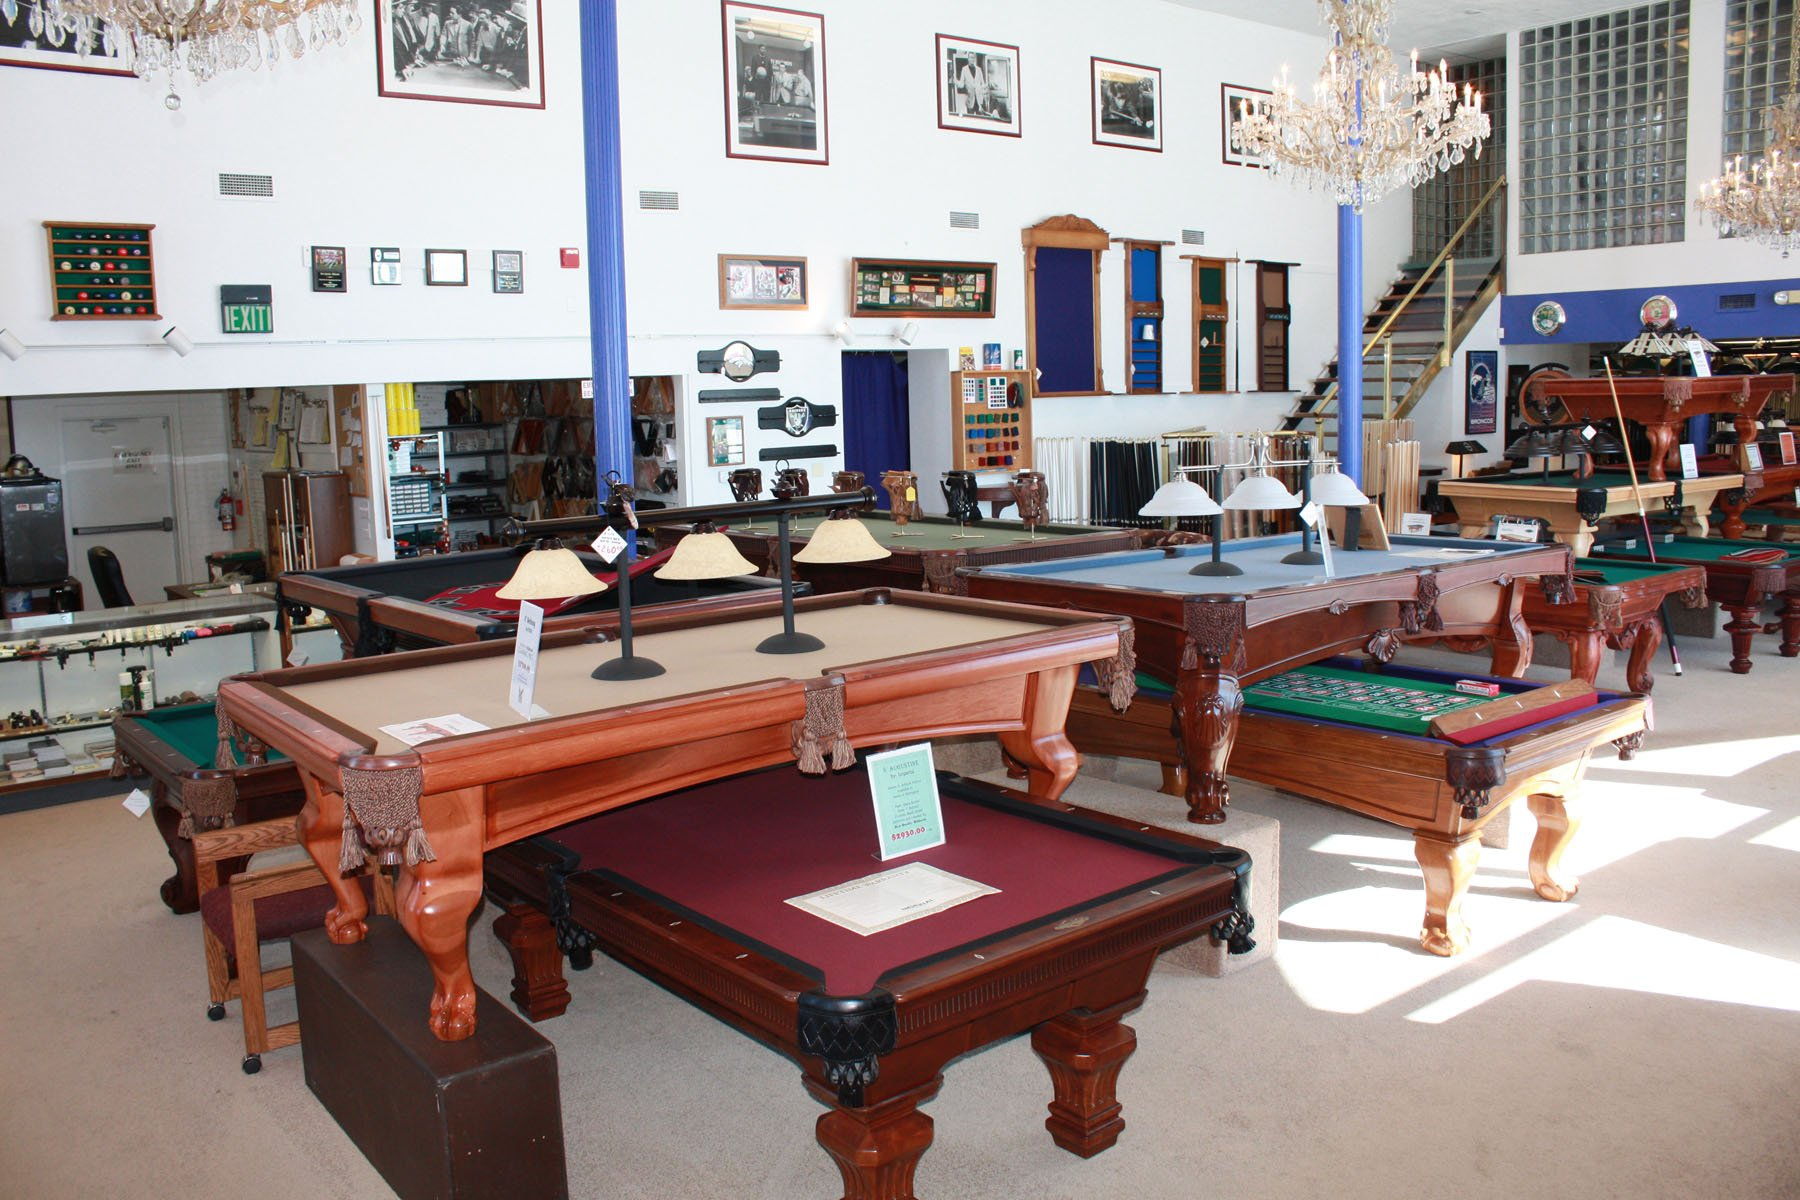 Denver, Colorado buys it's pool tables from Best Quality Billiards